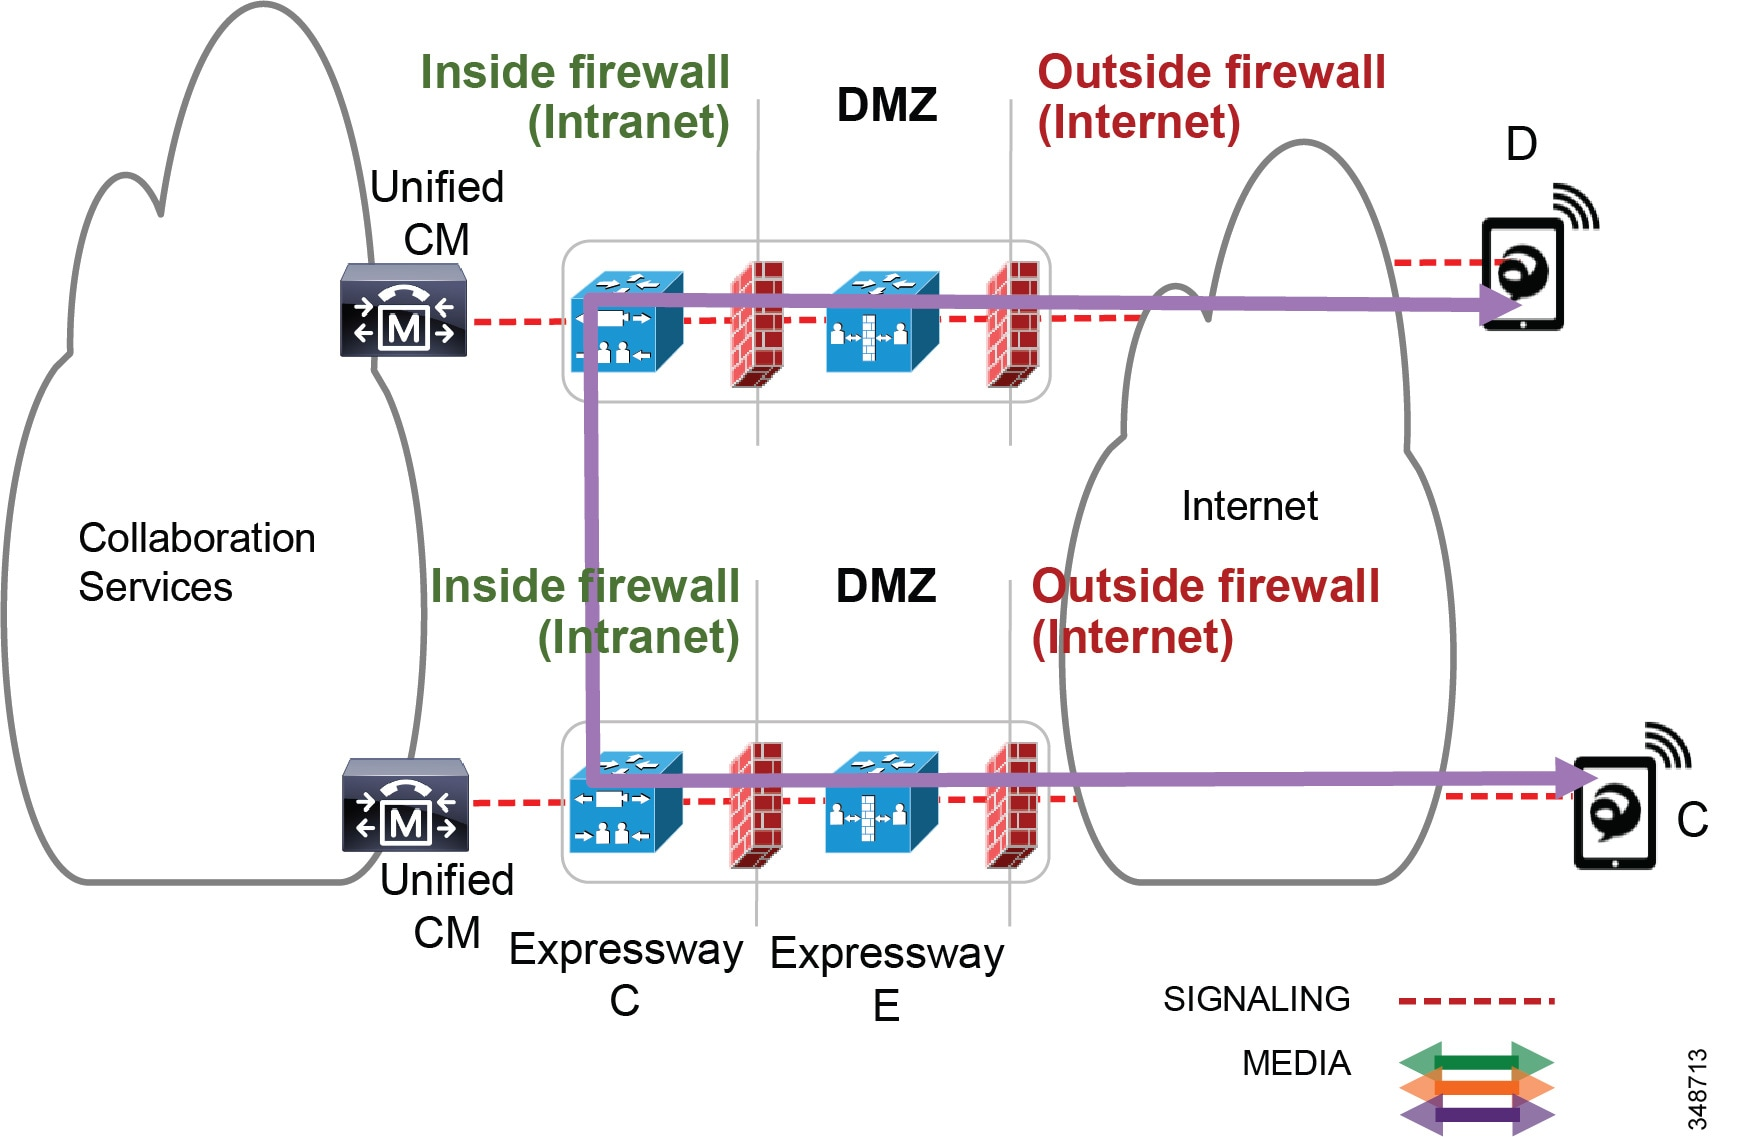 Cisco Collaboration System 12x Solution Reference Network Designs Diagram For Internetbased Servers Scenario 4 With Intranet Integrate Bandwidth Tracking Media Flows That Traverse The Enterprise While Still Allowing Over Internet Without Admission Control